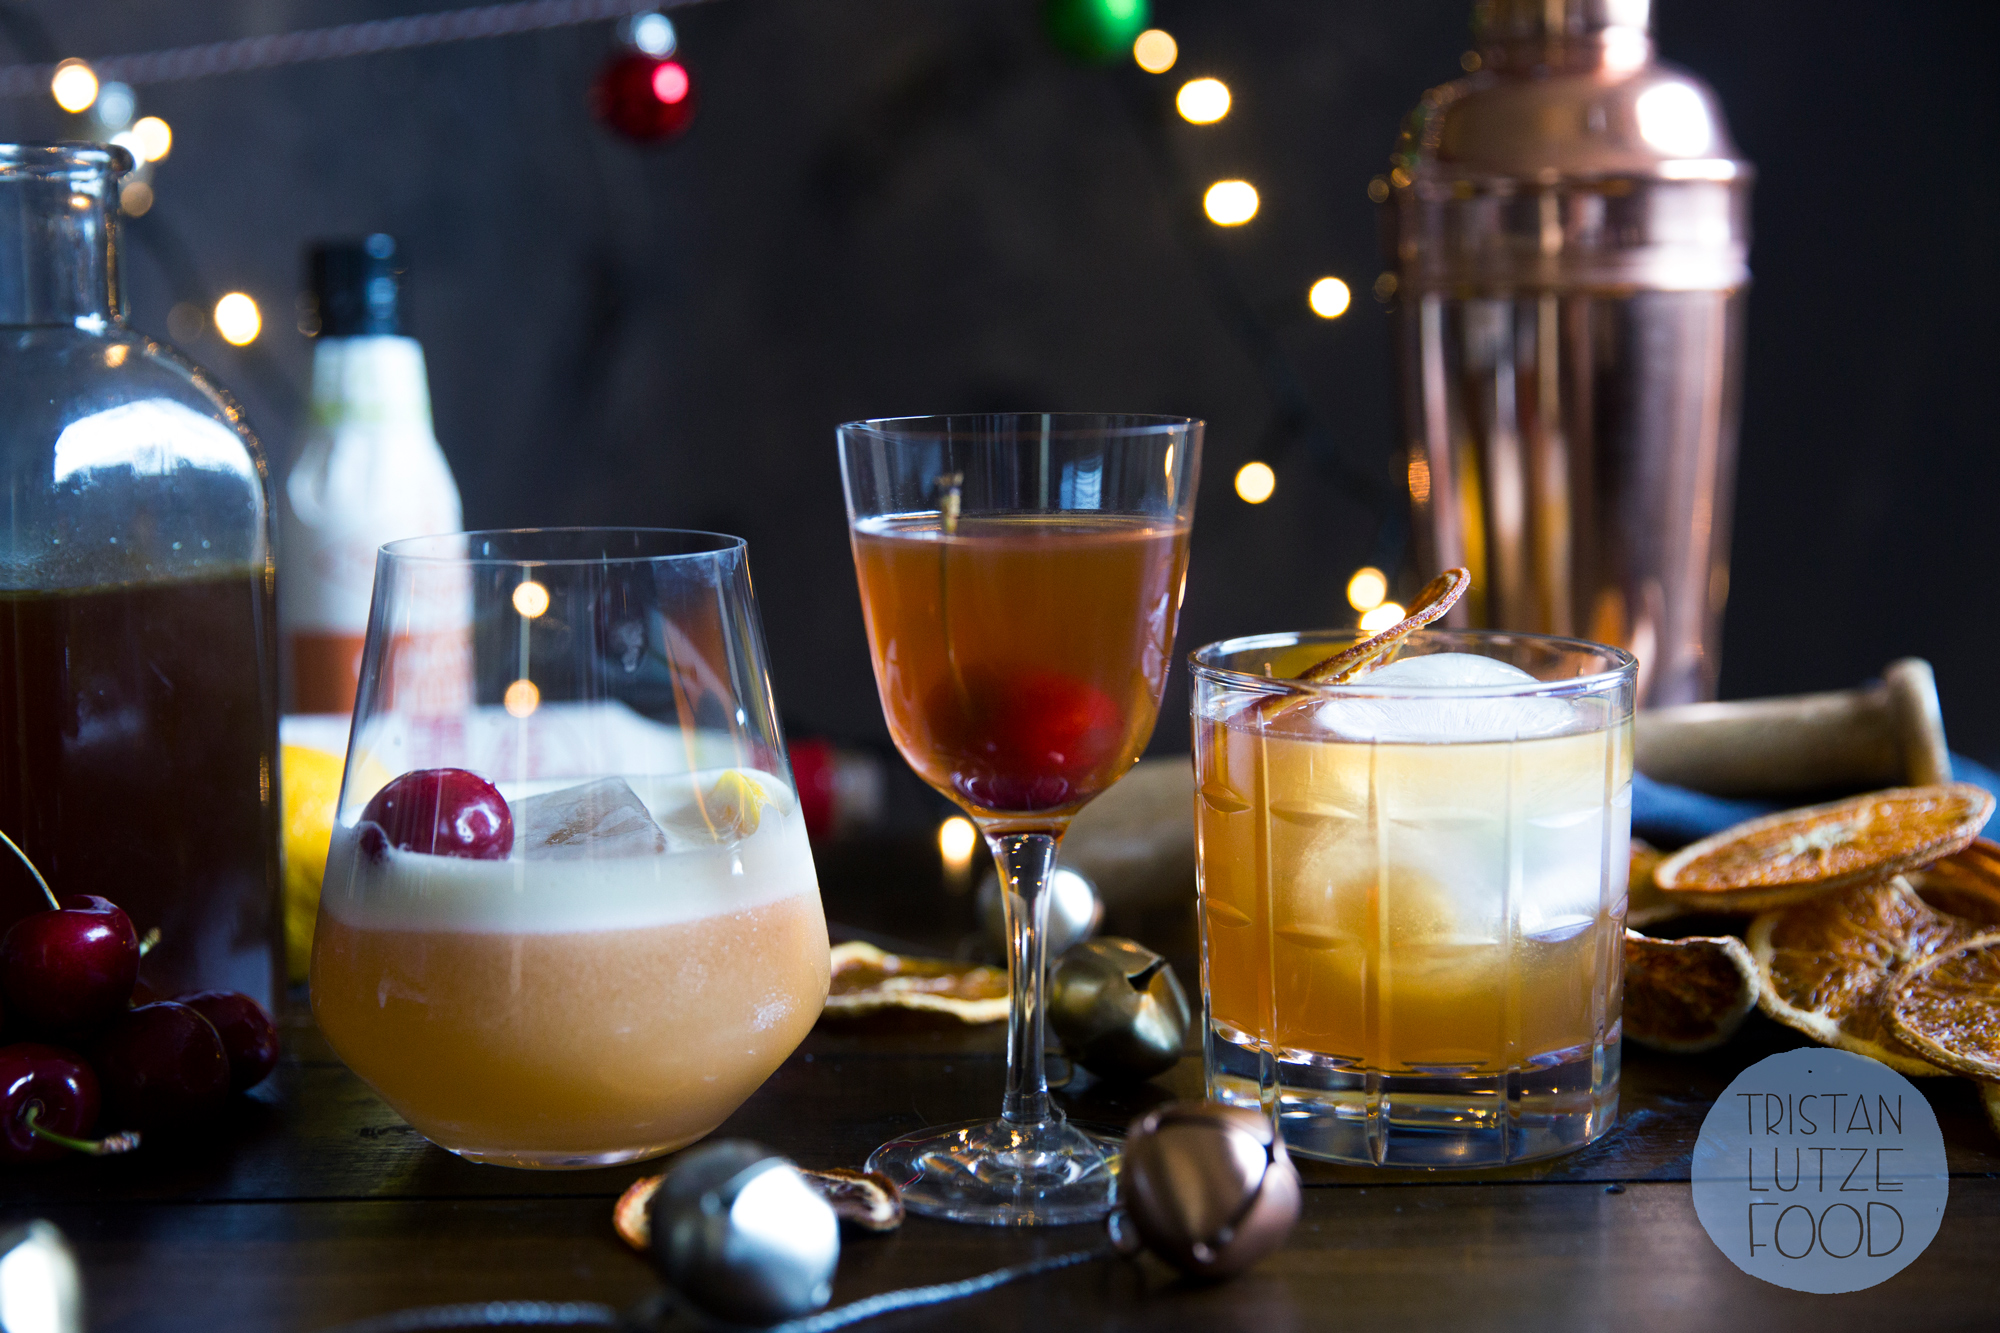 Christmas whiskey sour, Manhattan and Old Fashioned, all made with Christmas pudding-infused whiskey.